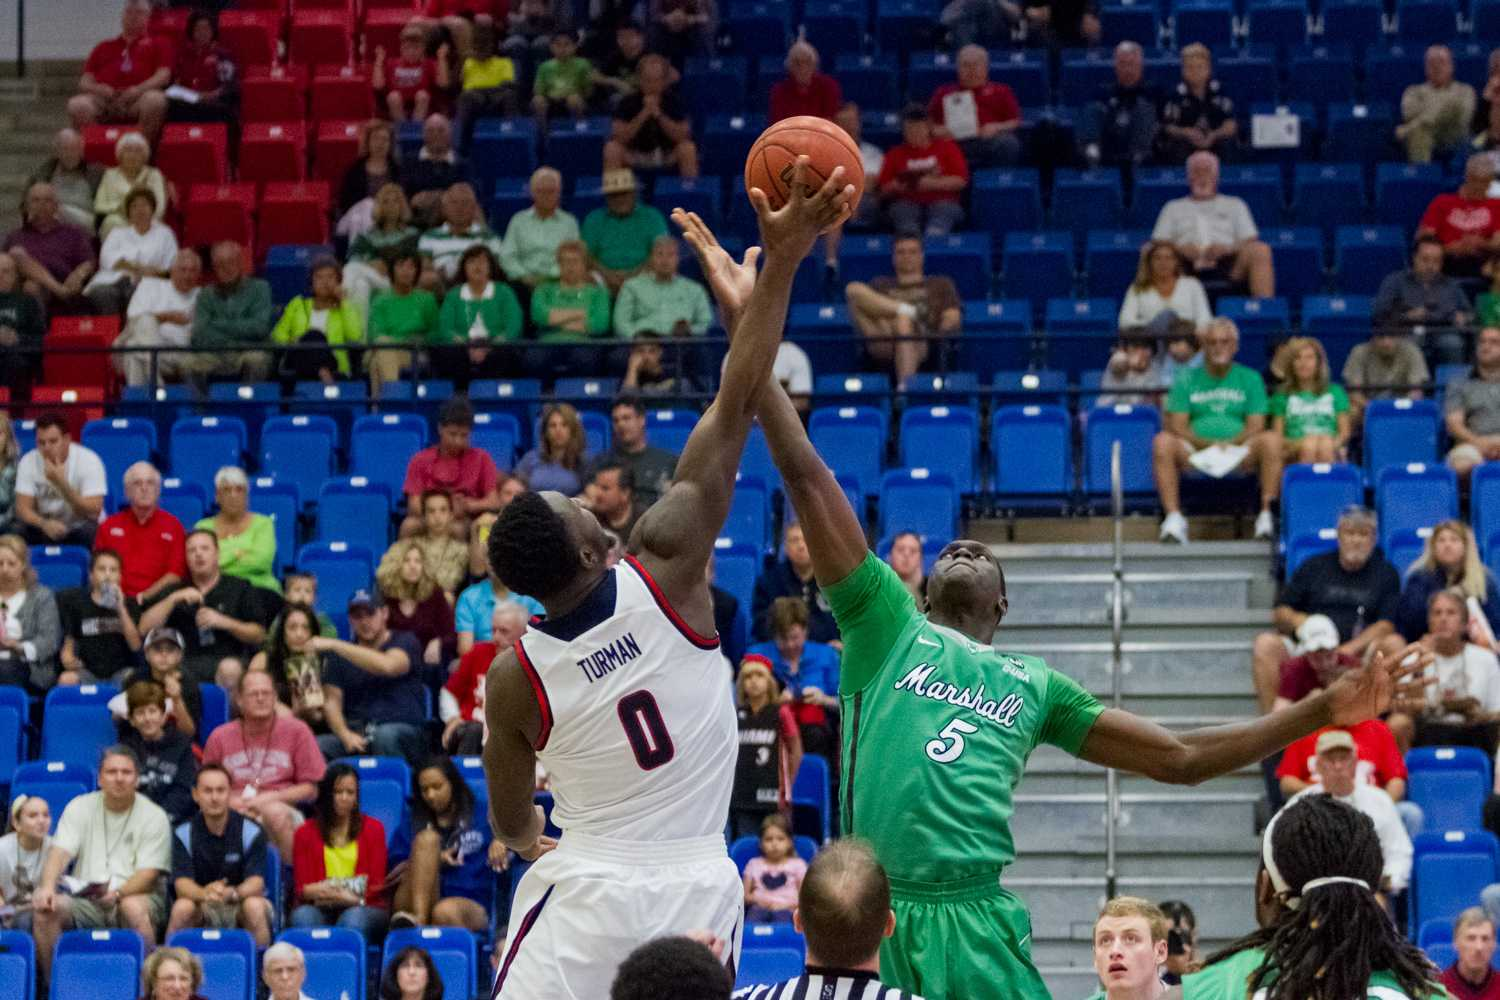 FAU's C.J. Turman (0) and Marshall's Cheikh Sane (5) at tip-off.